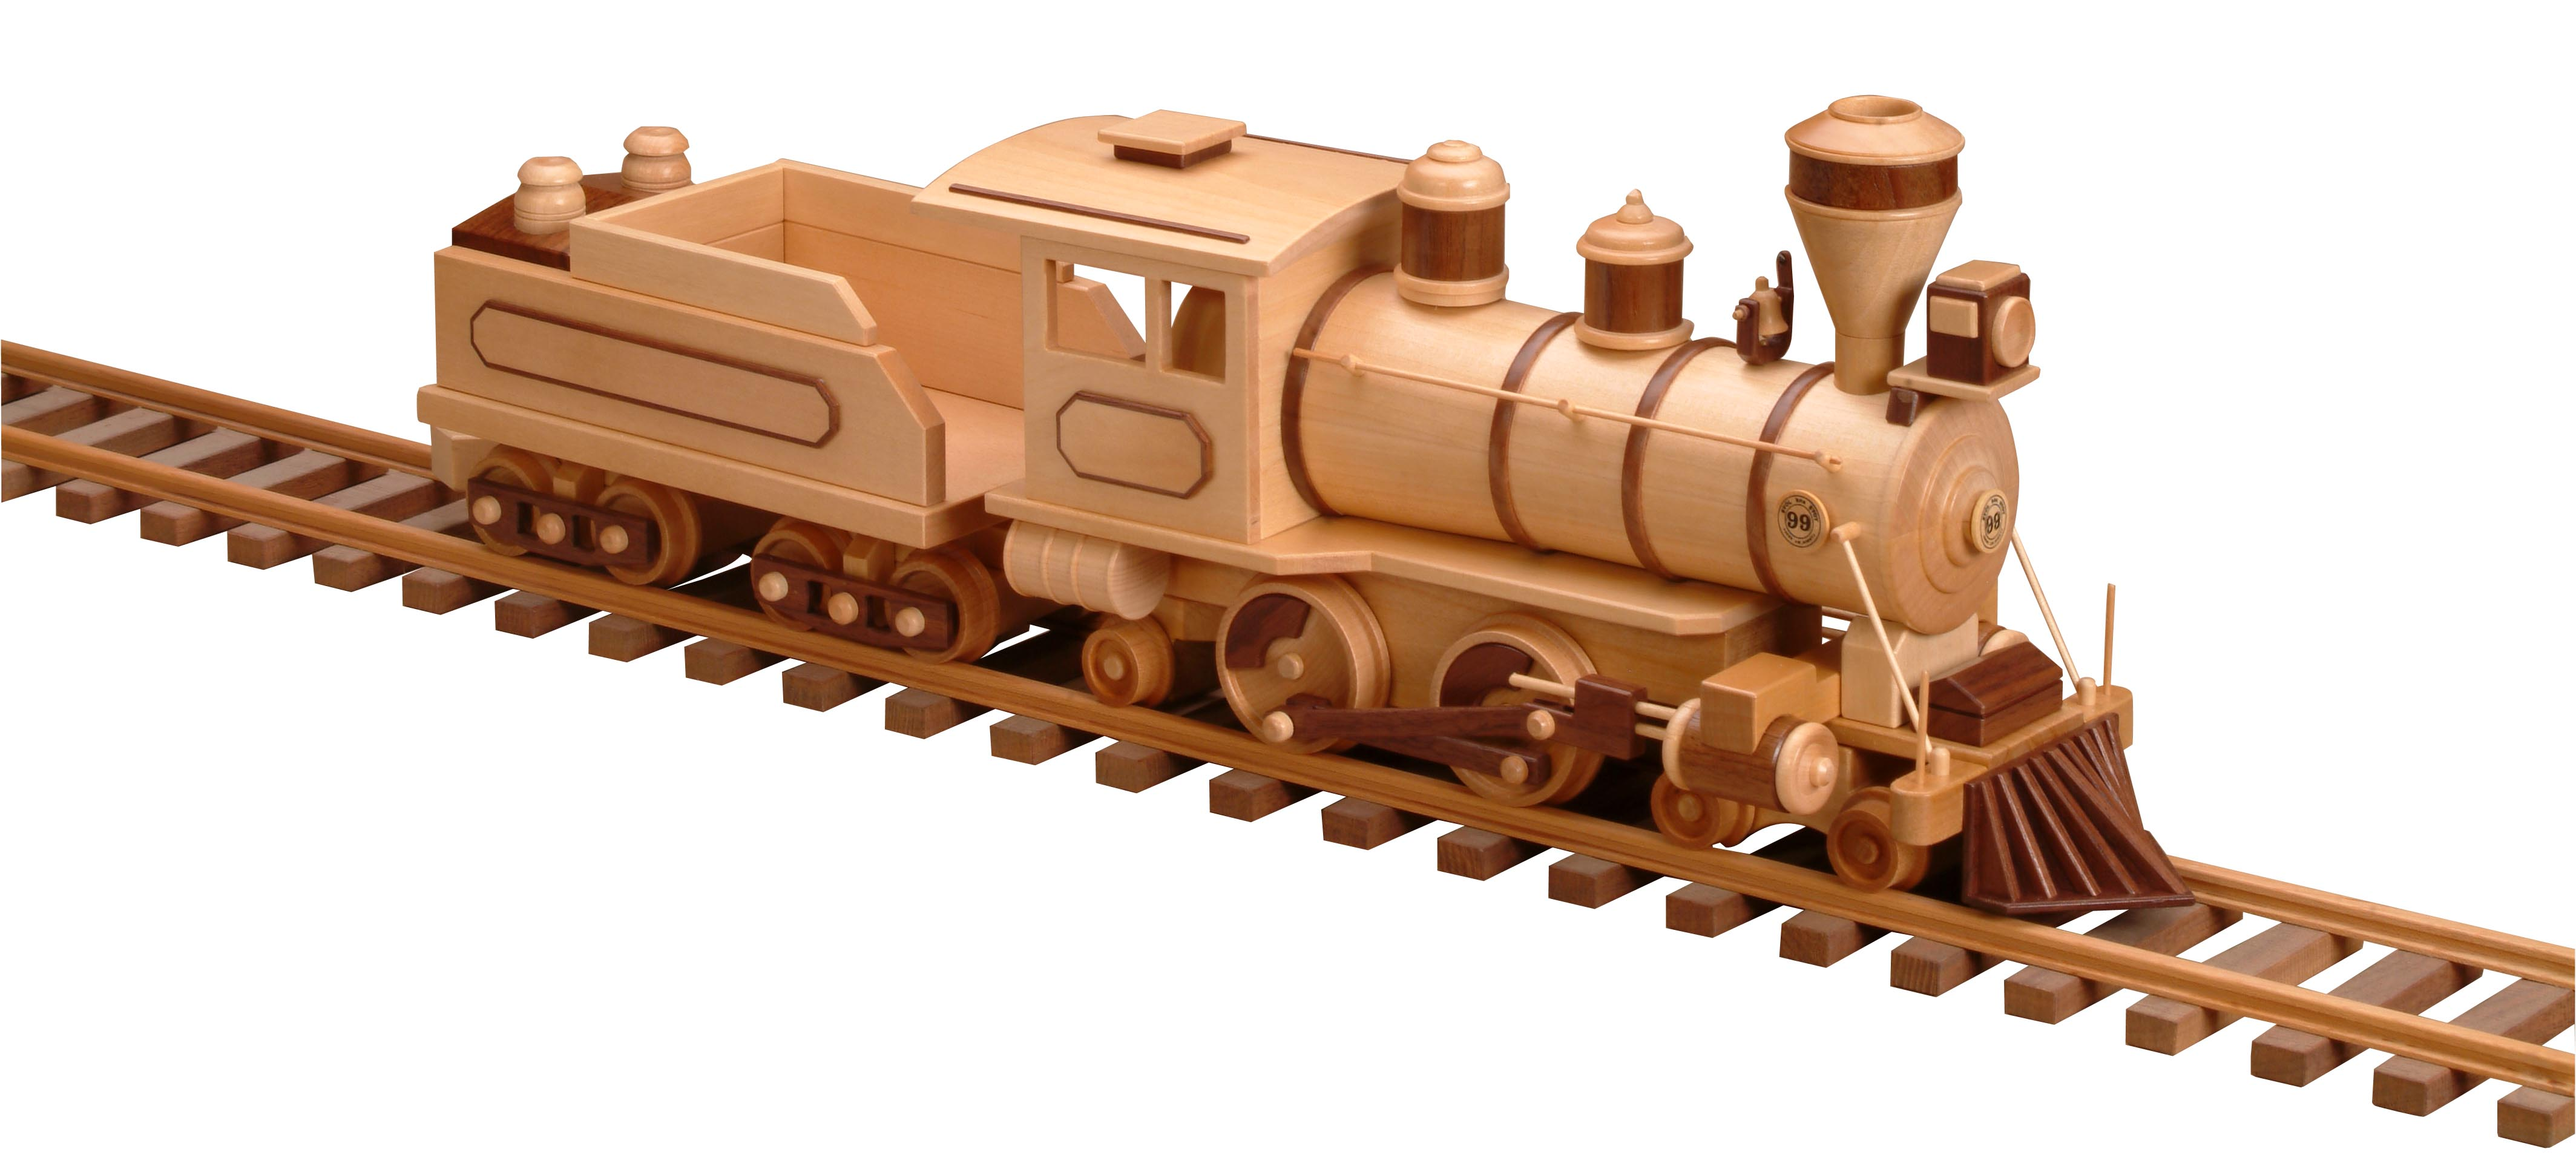 Wooden Toy Train Patterns : Patterns kits trains locomotive tender